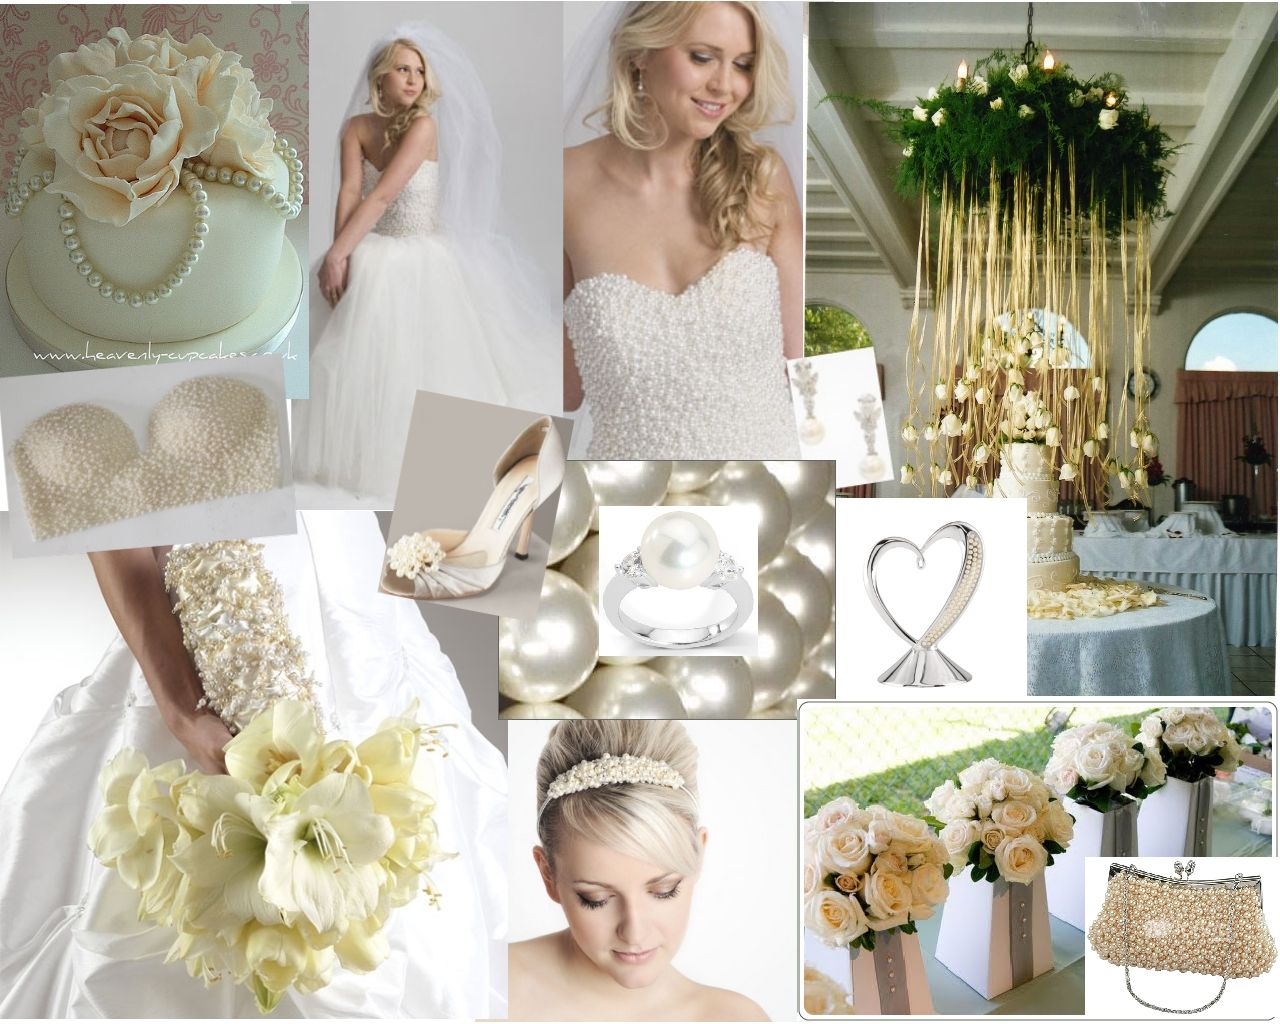 peal themed wedding | Wedding Ideas | Pinterest | Themed weddings ...